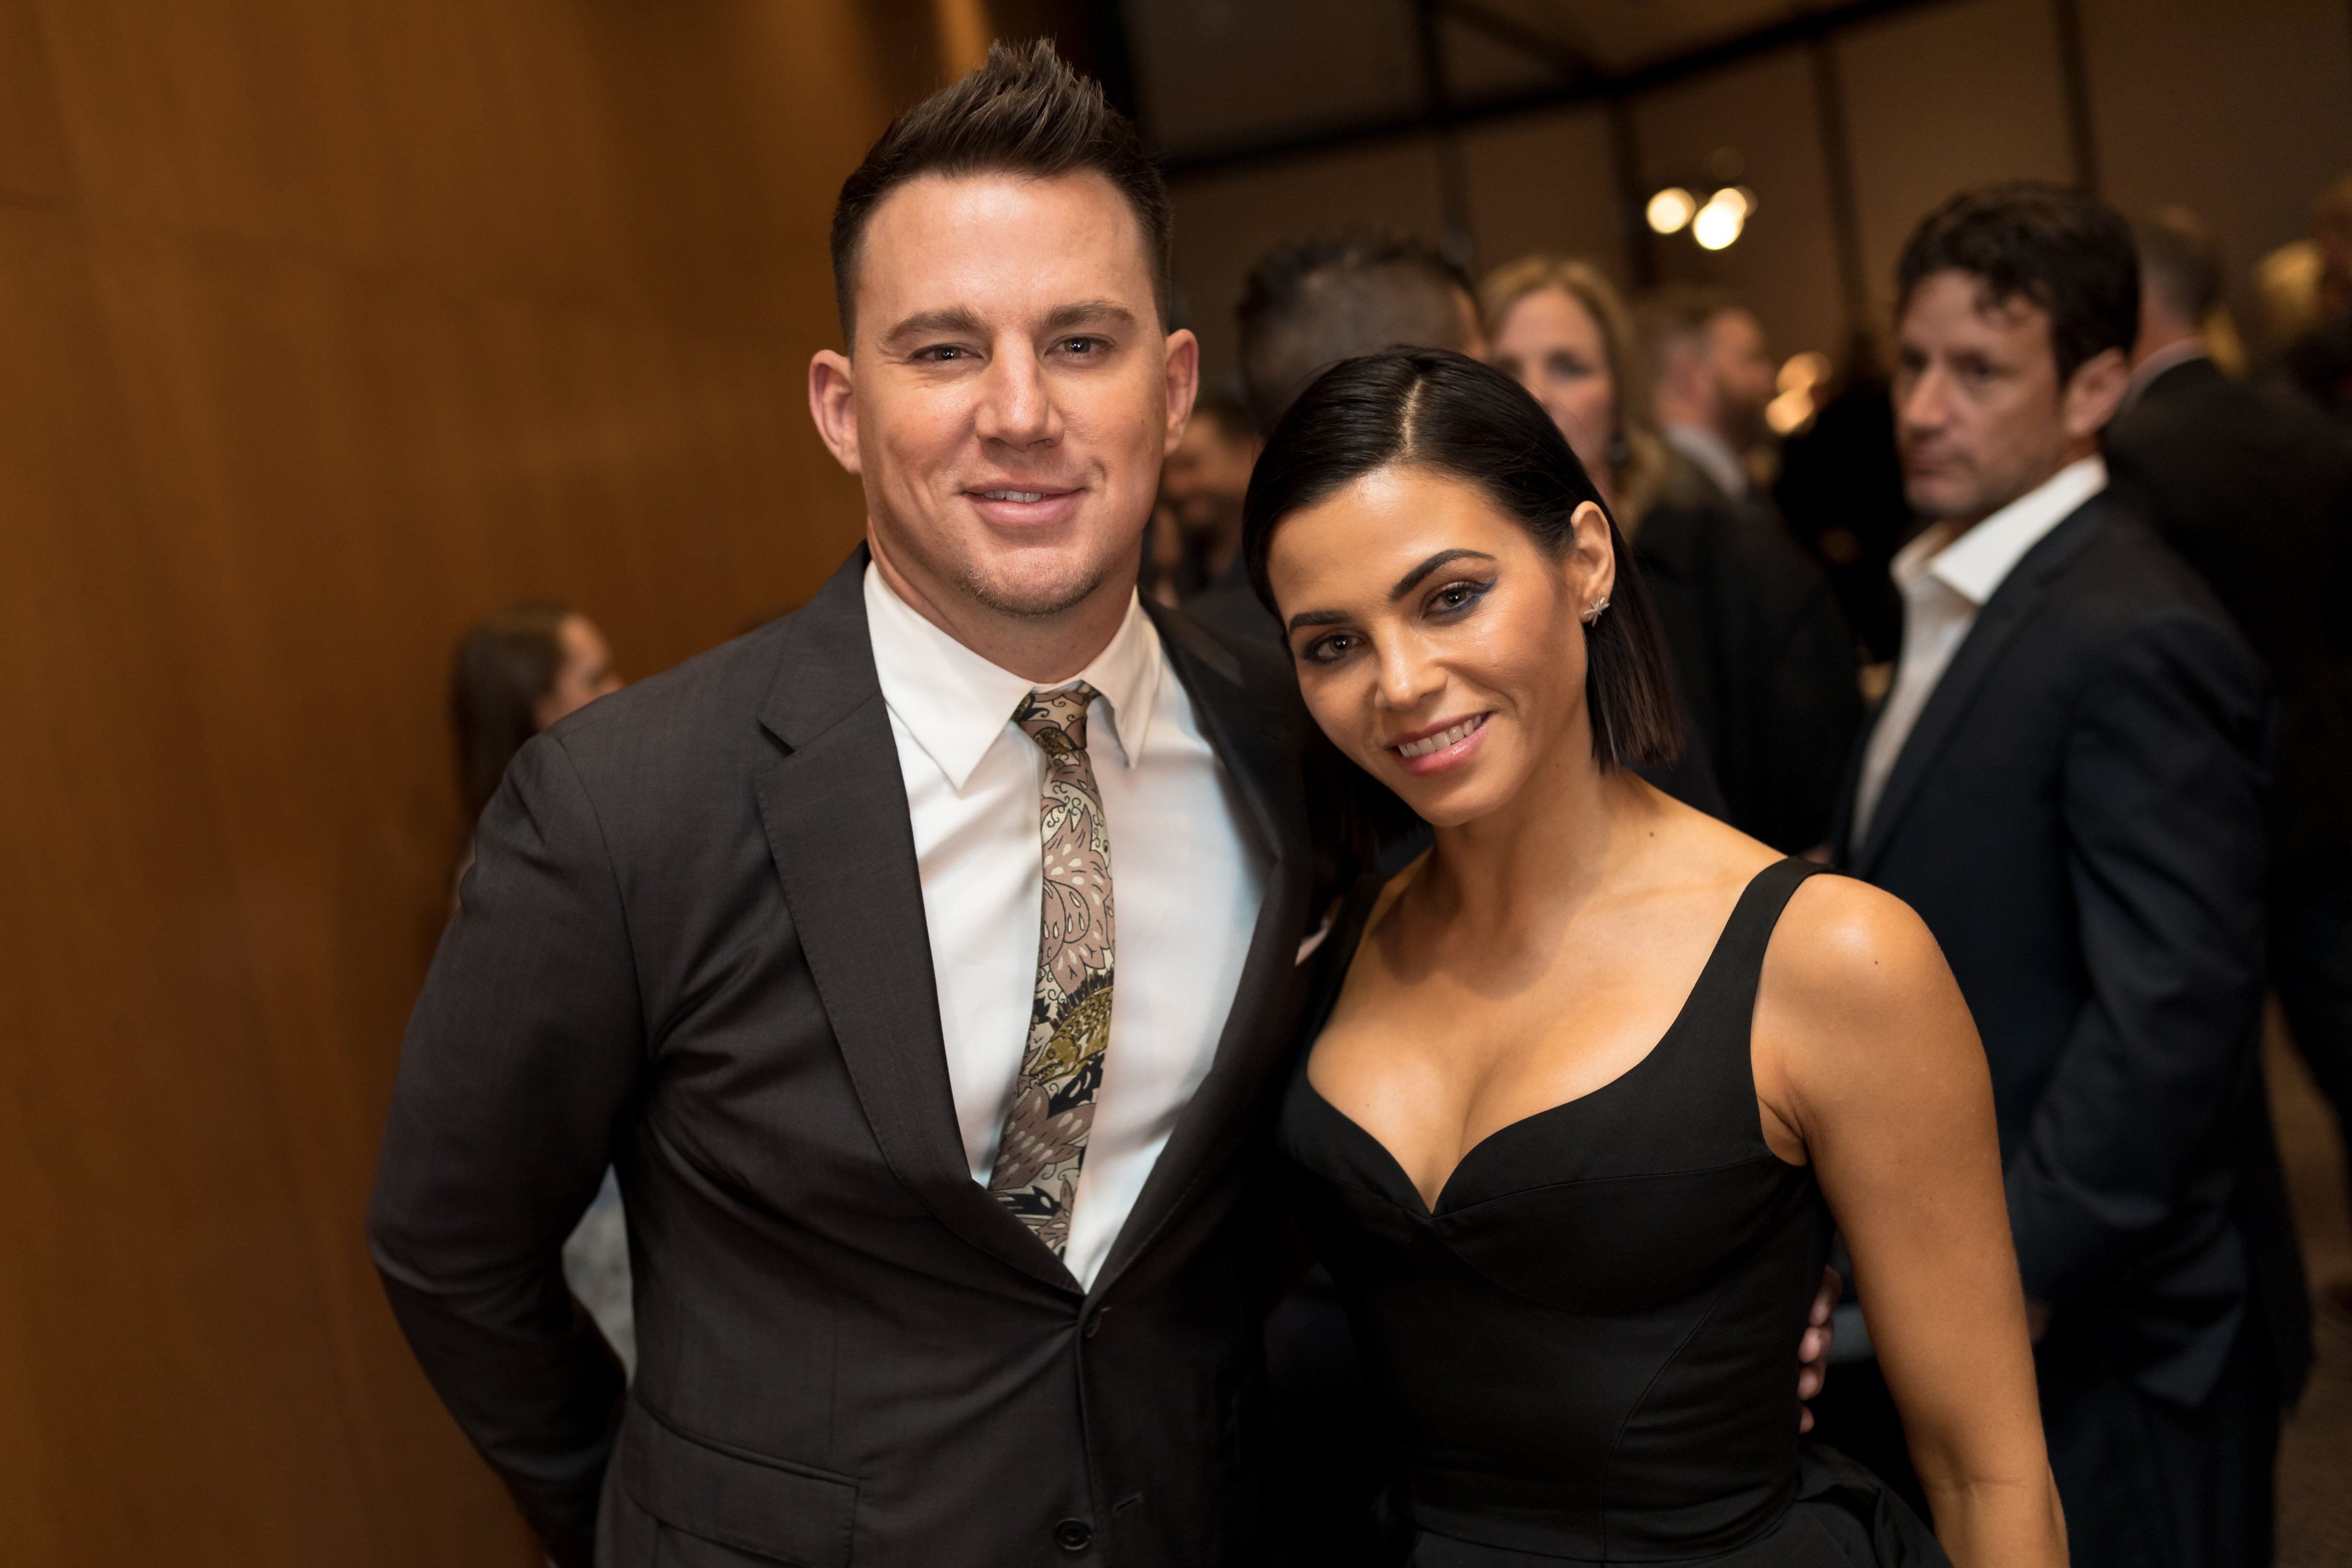 Channing Tatum and Jenna Dewan Tatum attend the after party at The Directors Guild Of America on November 6, 2017, in Los Angeles, California. | Source: Getty Images